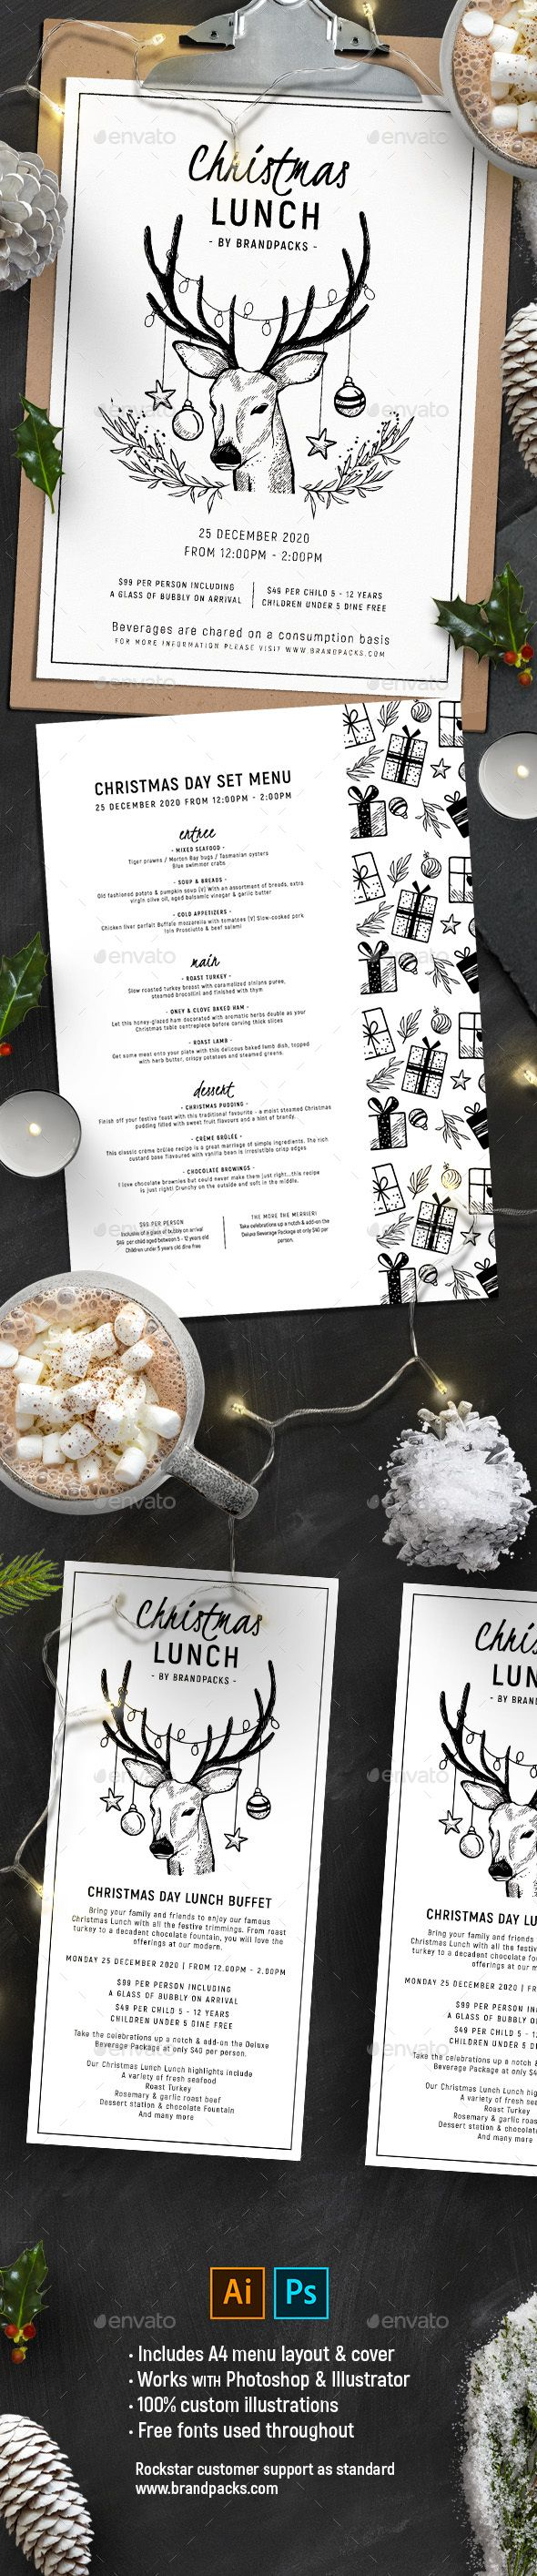 #Christmas #Menu Vol. 2 - #Food Menus Print Templates